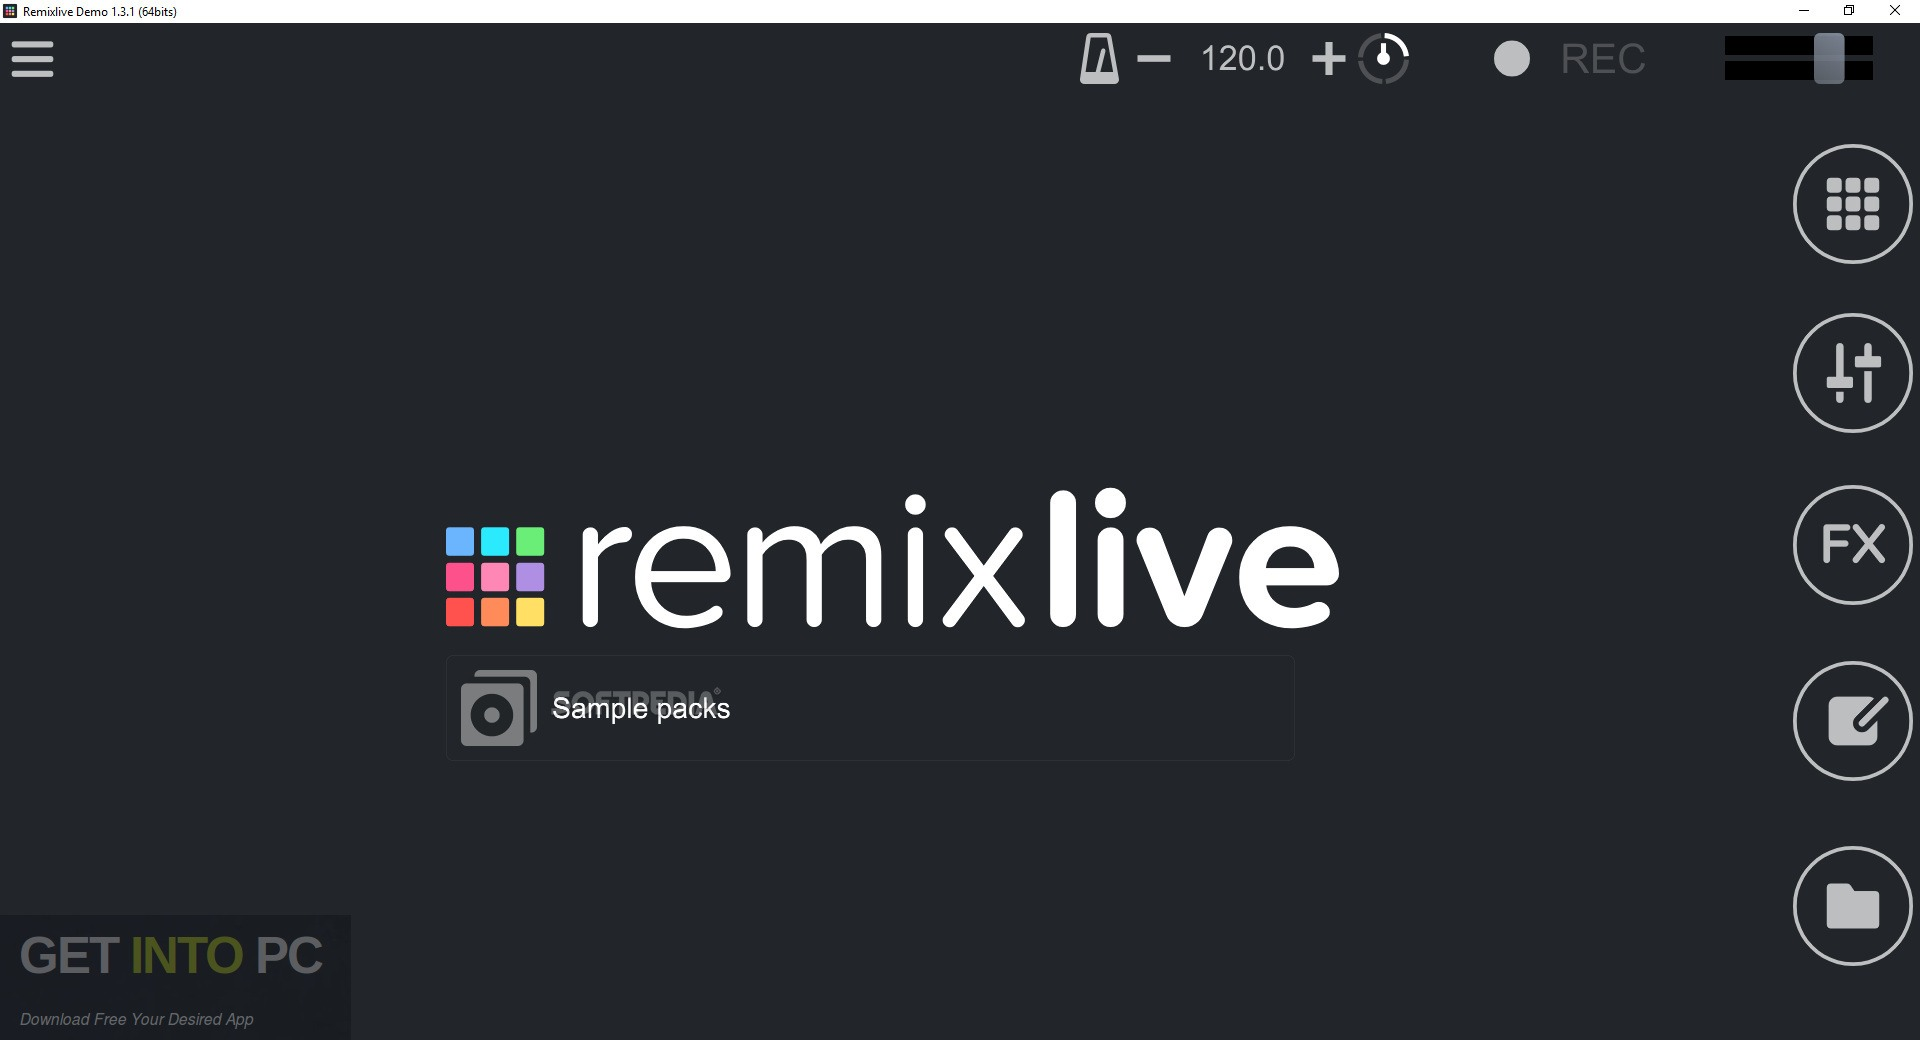 Mixvibes Remixlive for Windows Free Download - GetIntoPC.com